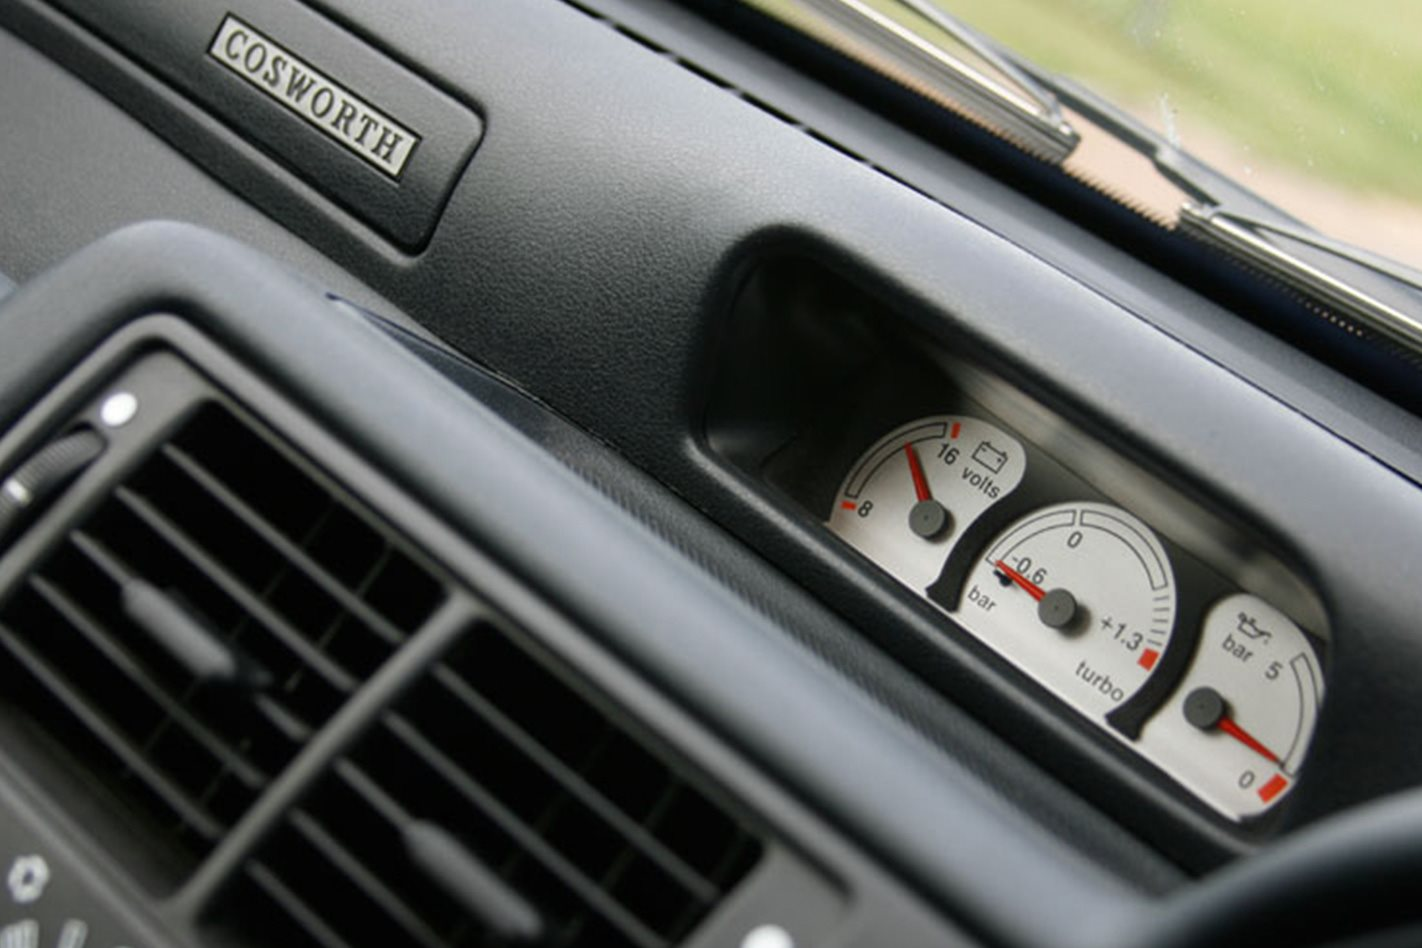 1992 Ford Escort RS Cosworth gauges